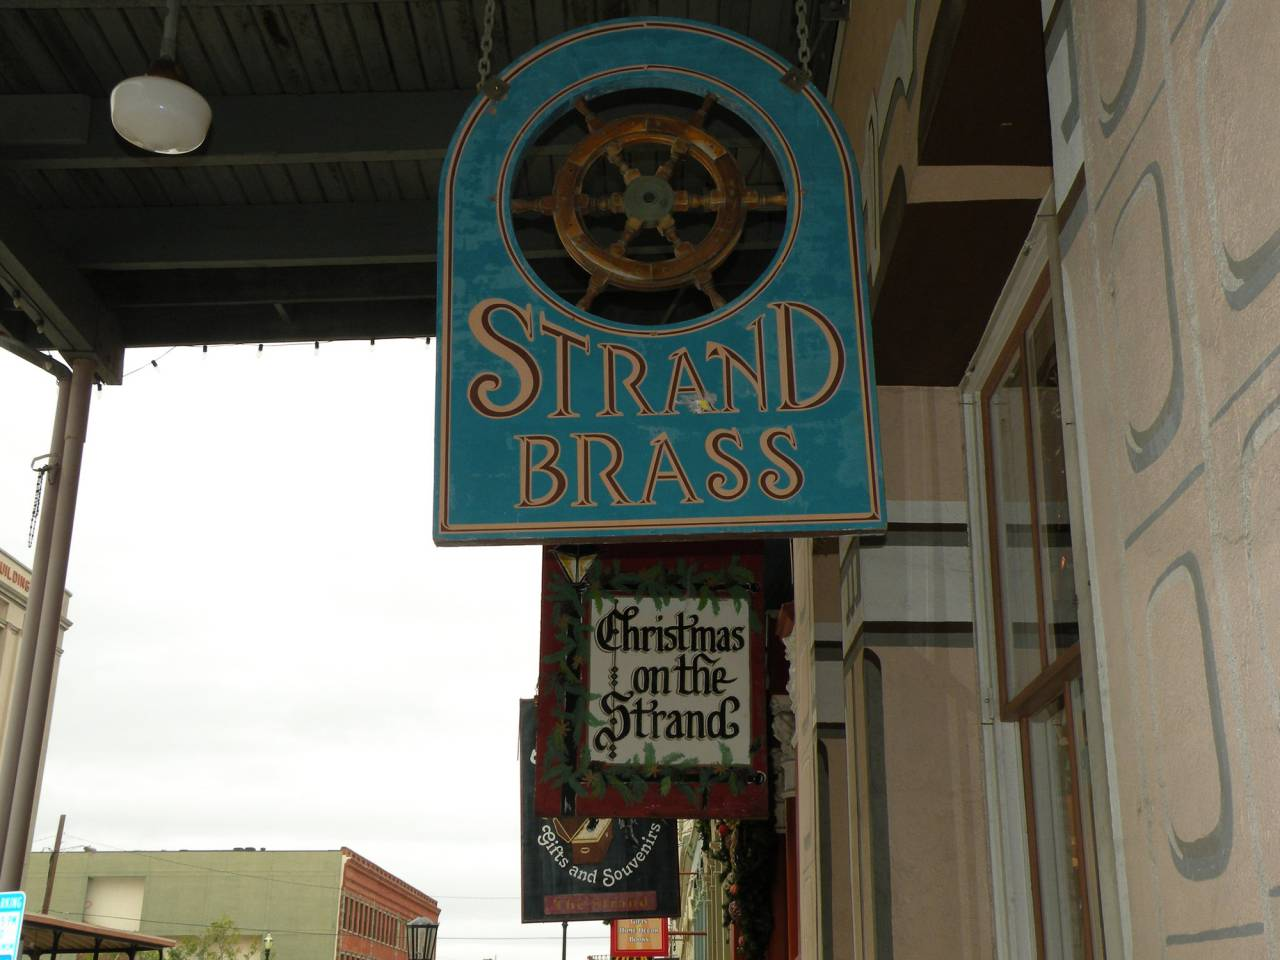 Strand Brass and Christmas on the Strand